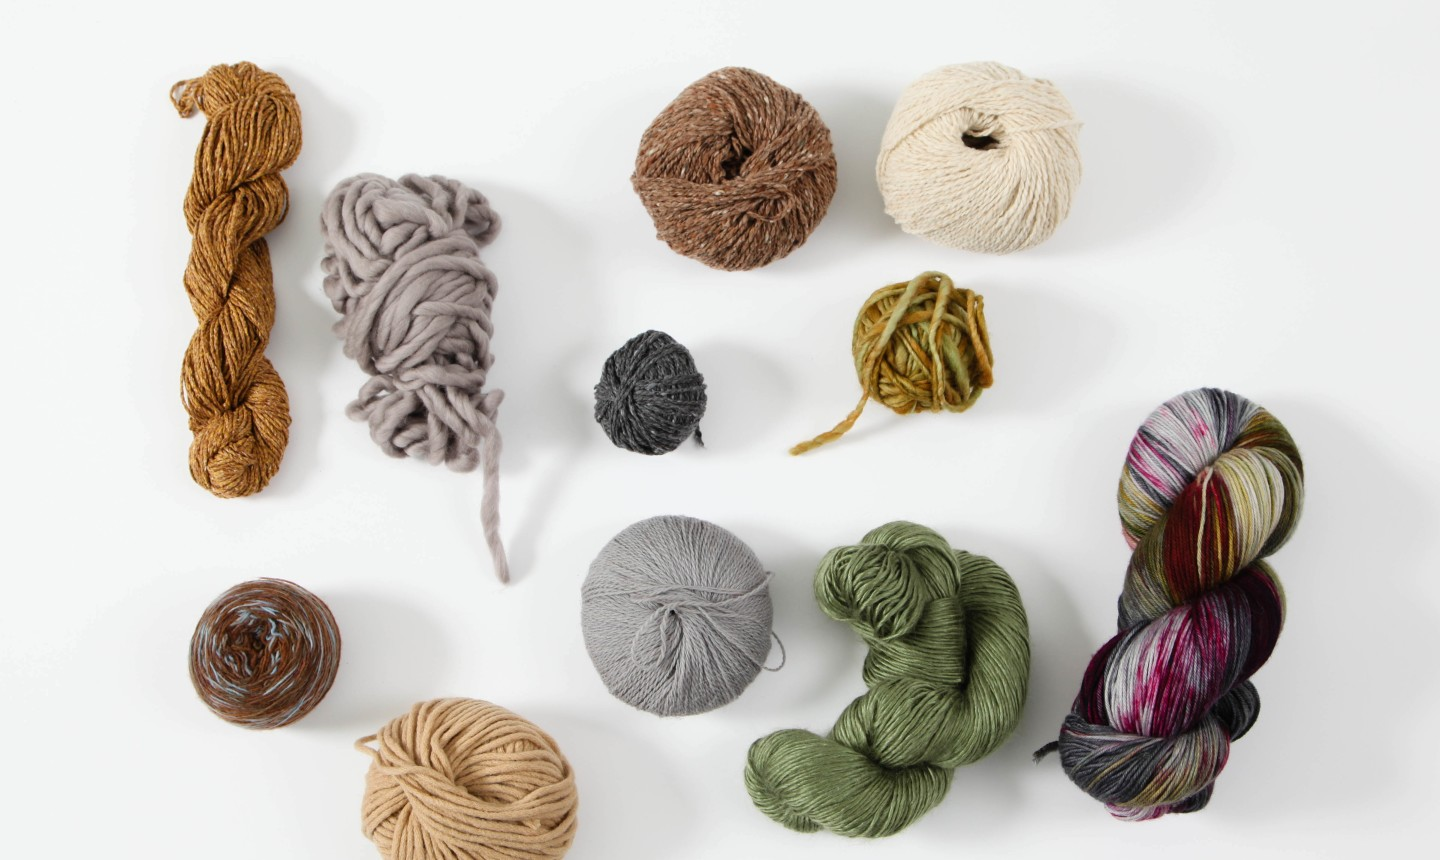 skeins and balls of yarn